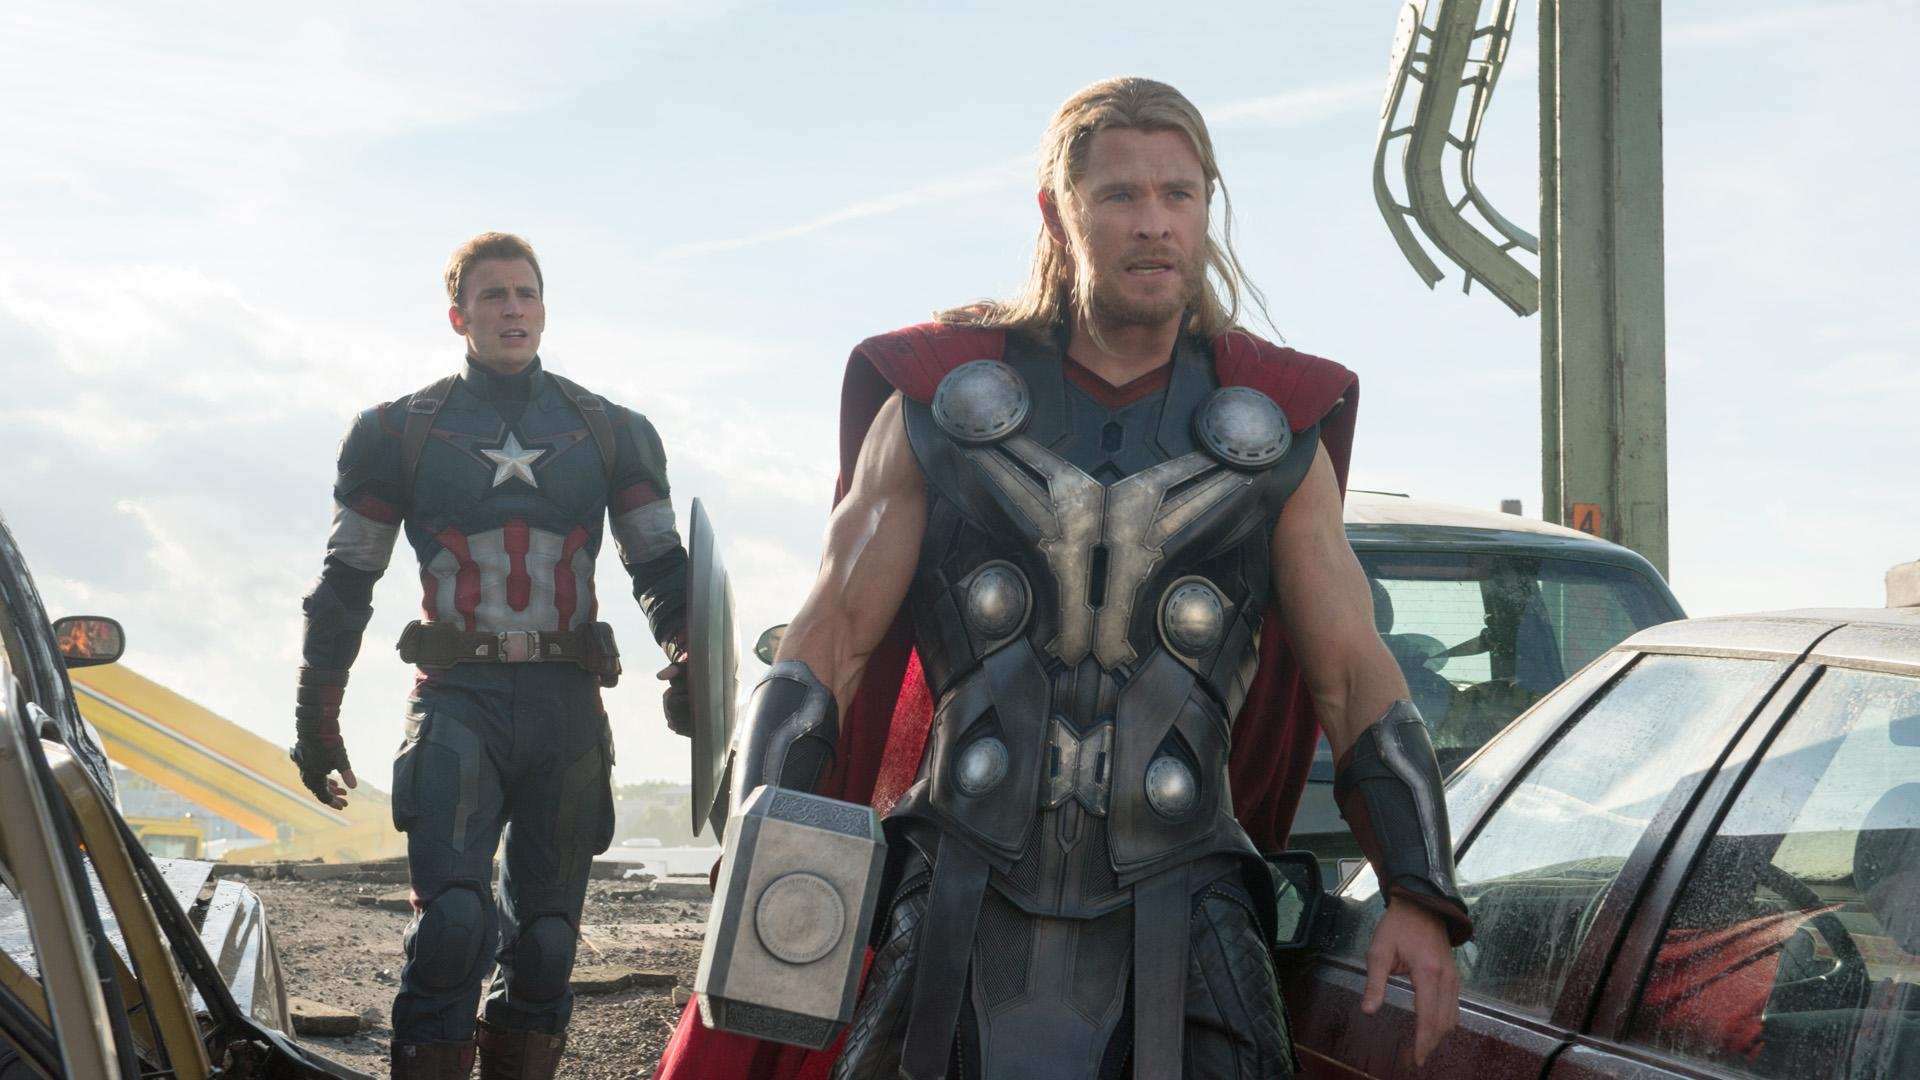 'Avengers: Age of Ultron' Massive at Box Office, $84.5 Million Opening Day in U.S.